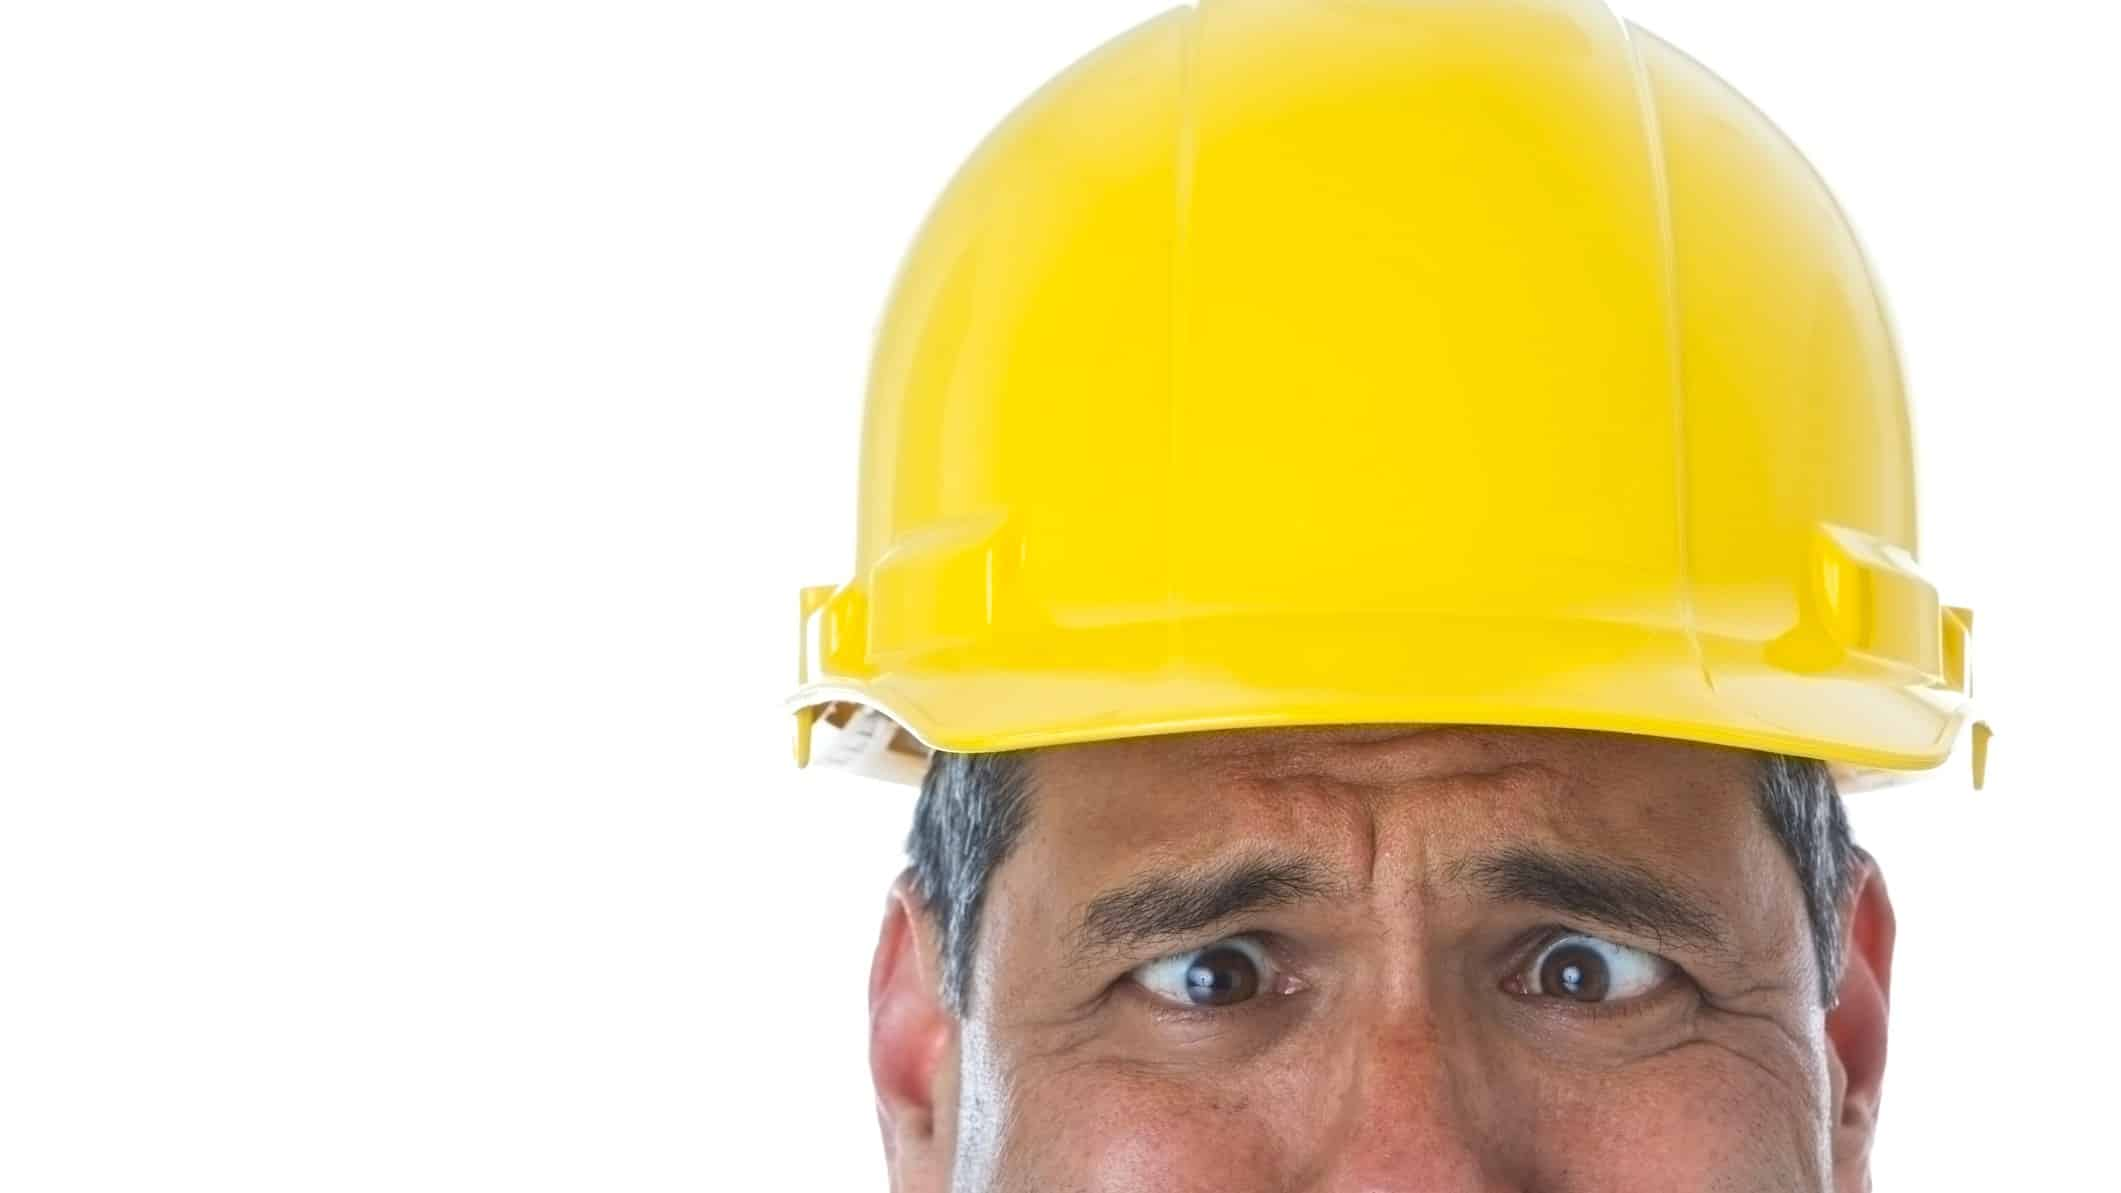 falling asx share price represented by sad looking builder